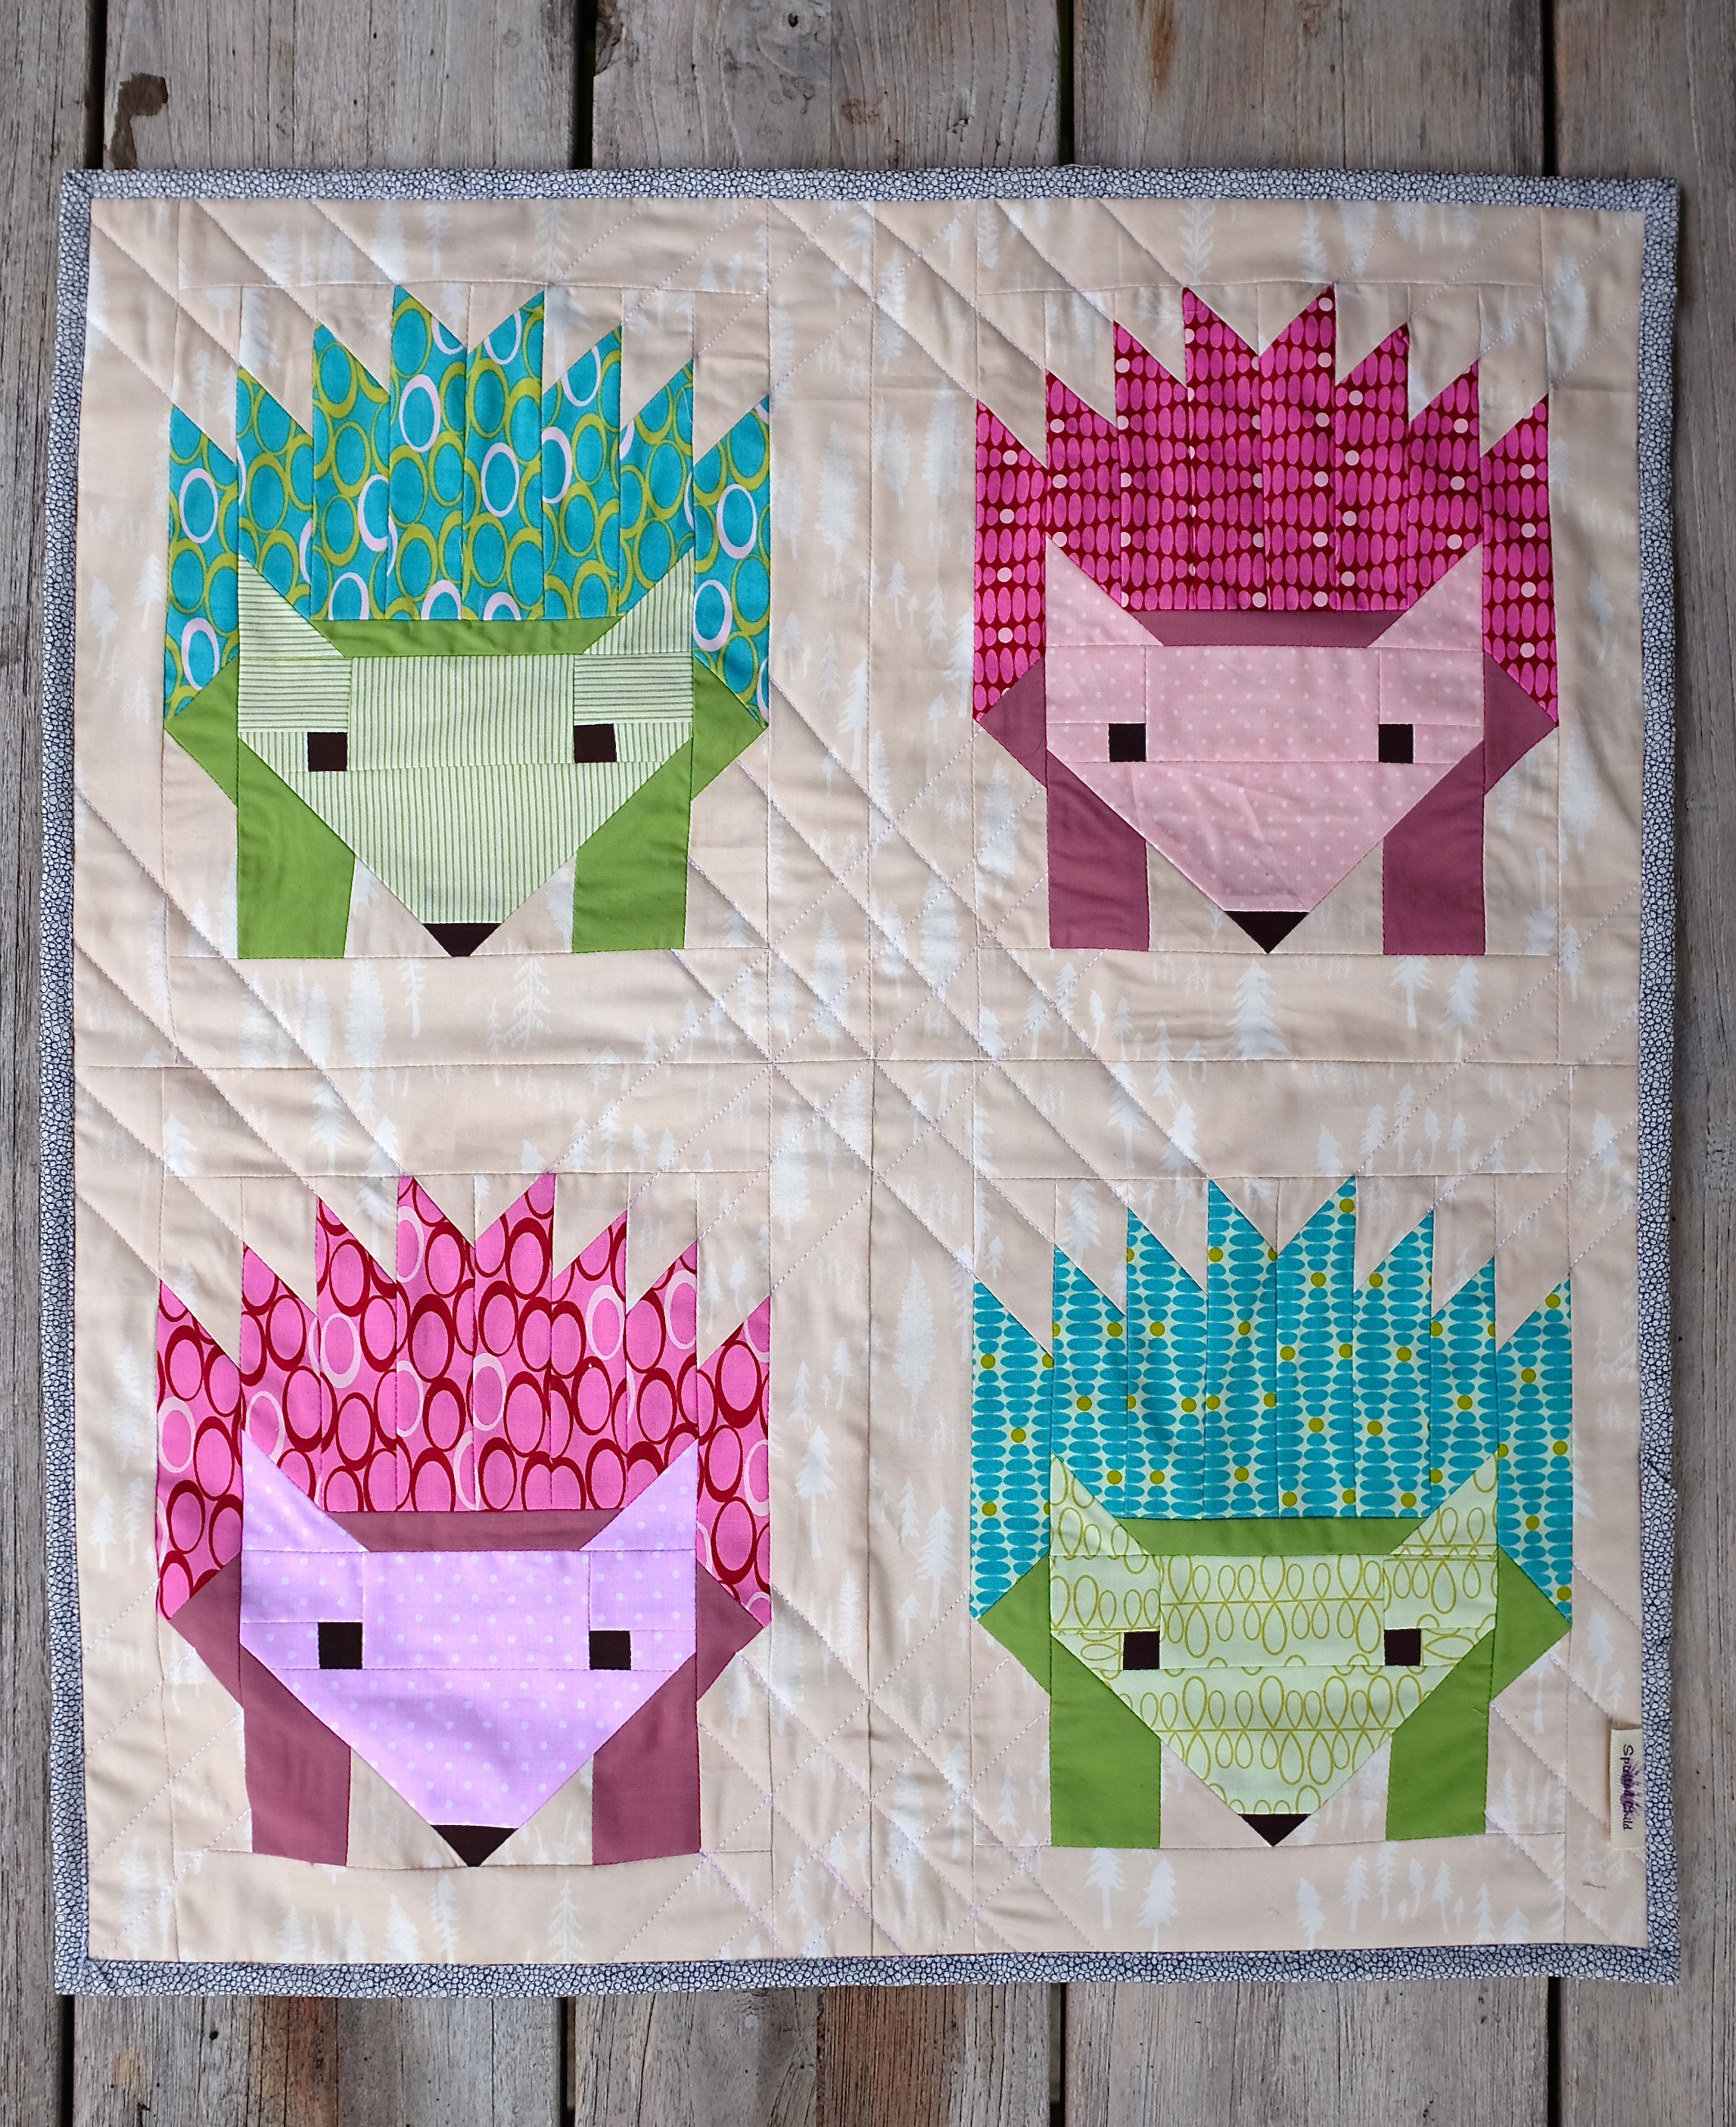 Hedgehog Mini Quilt